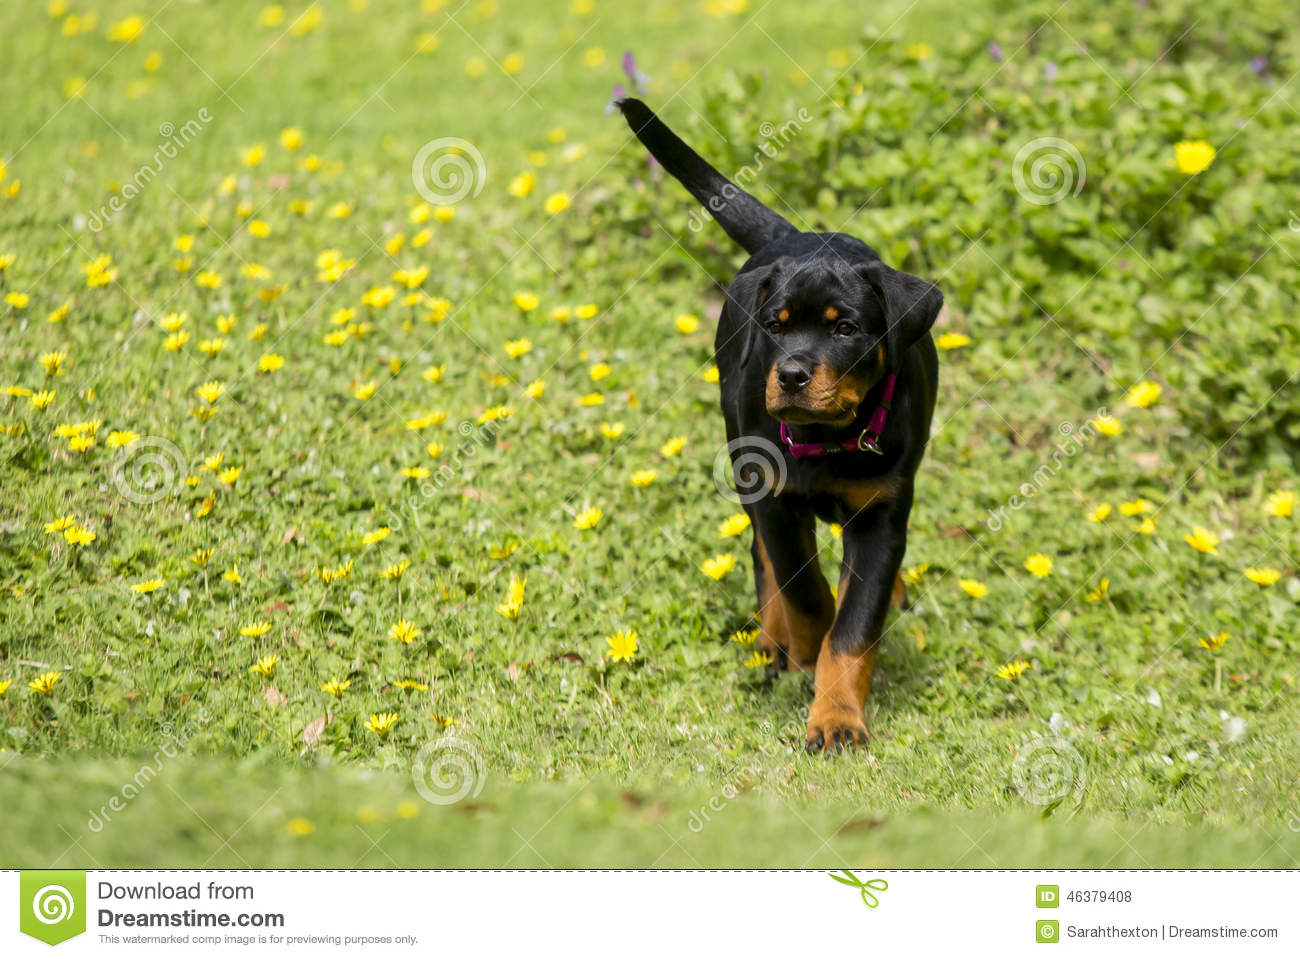 Baby Rottweiler Puppy Stock Photo Image Of Flowers Friend 46379408